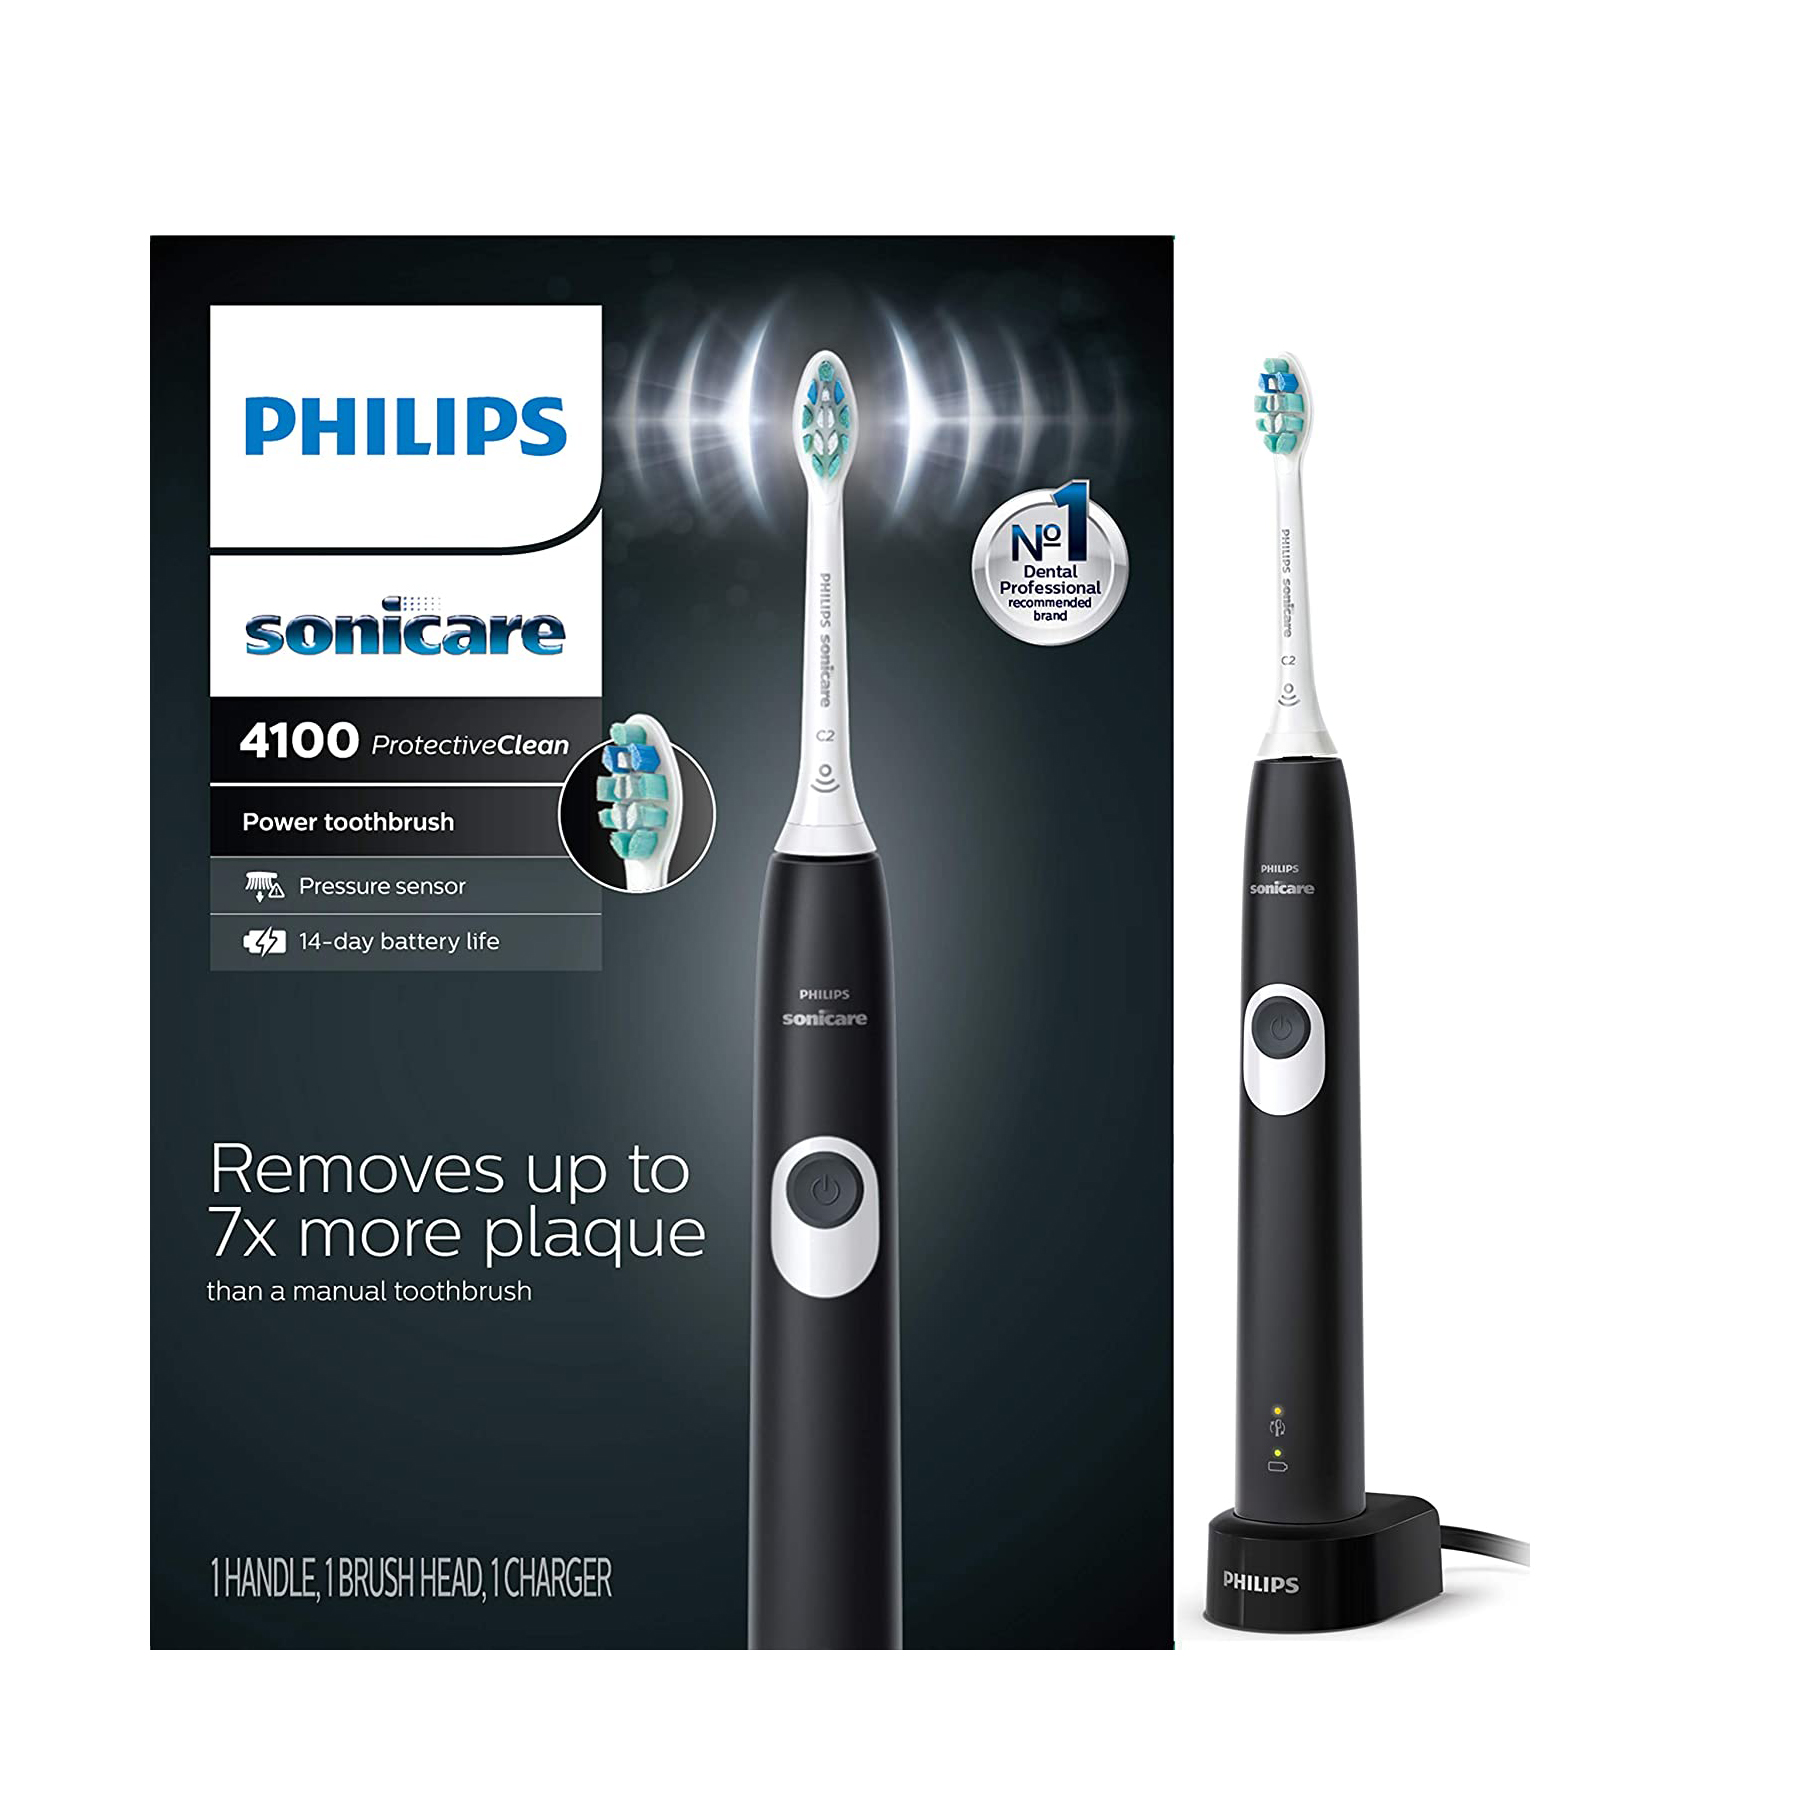 Philips Sonicare HX6810/50 ProtectiveClean 4100 Rechargeable Electric Toothbrush